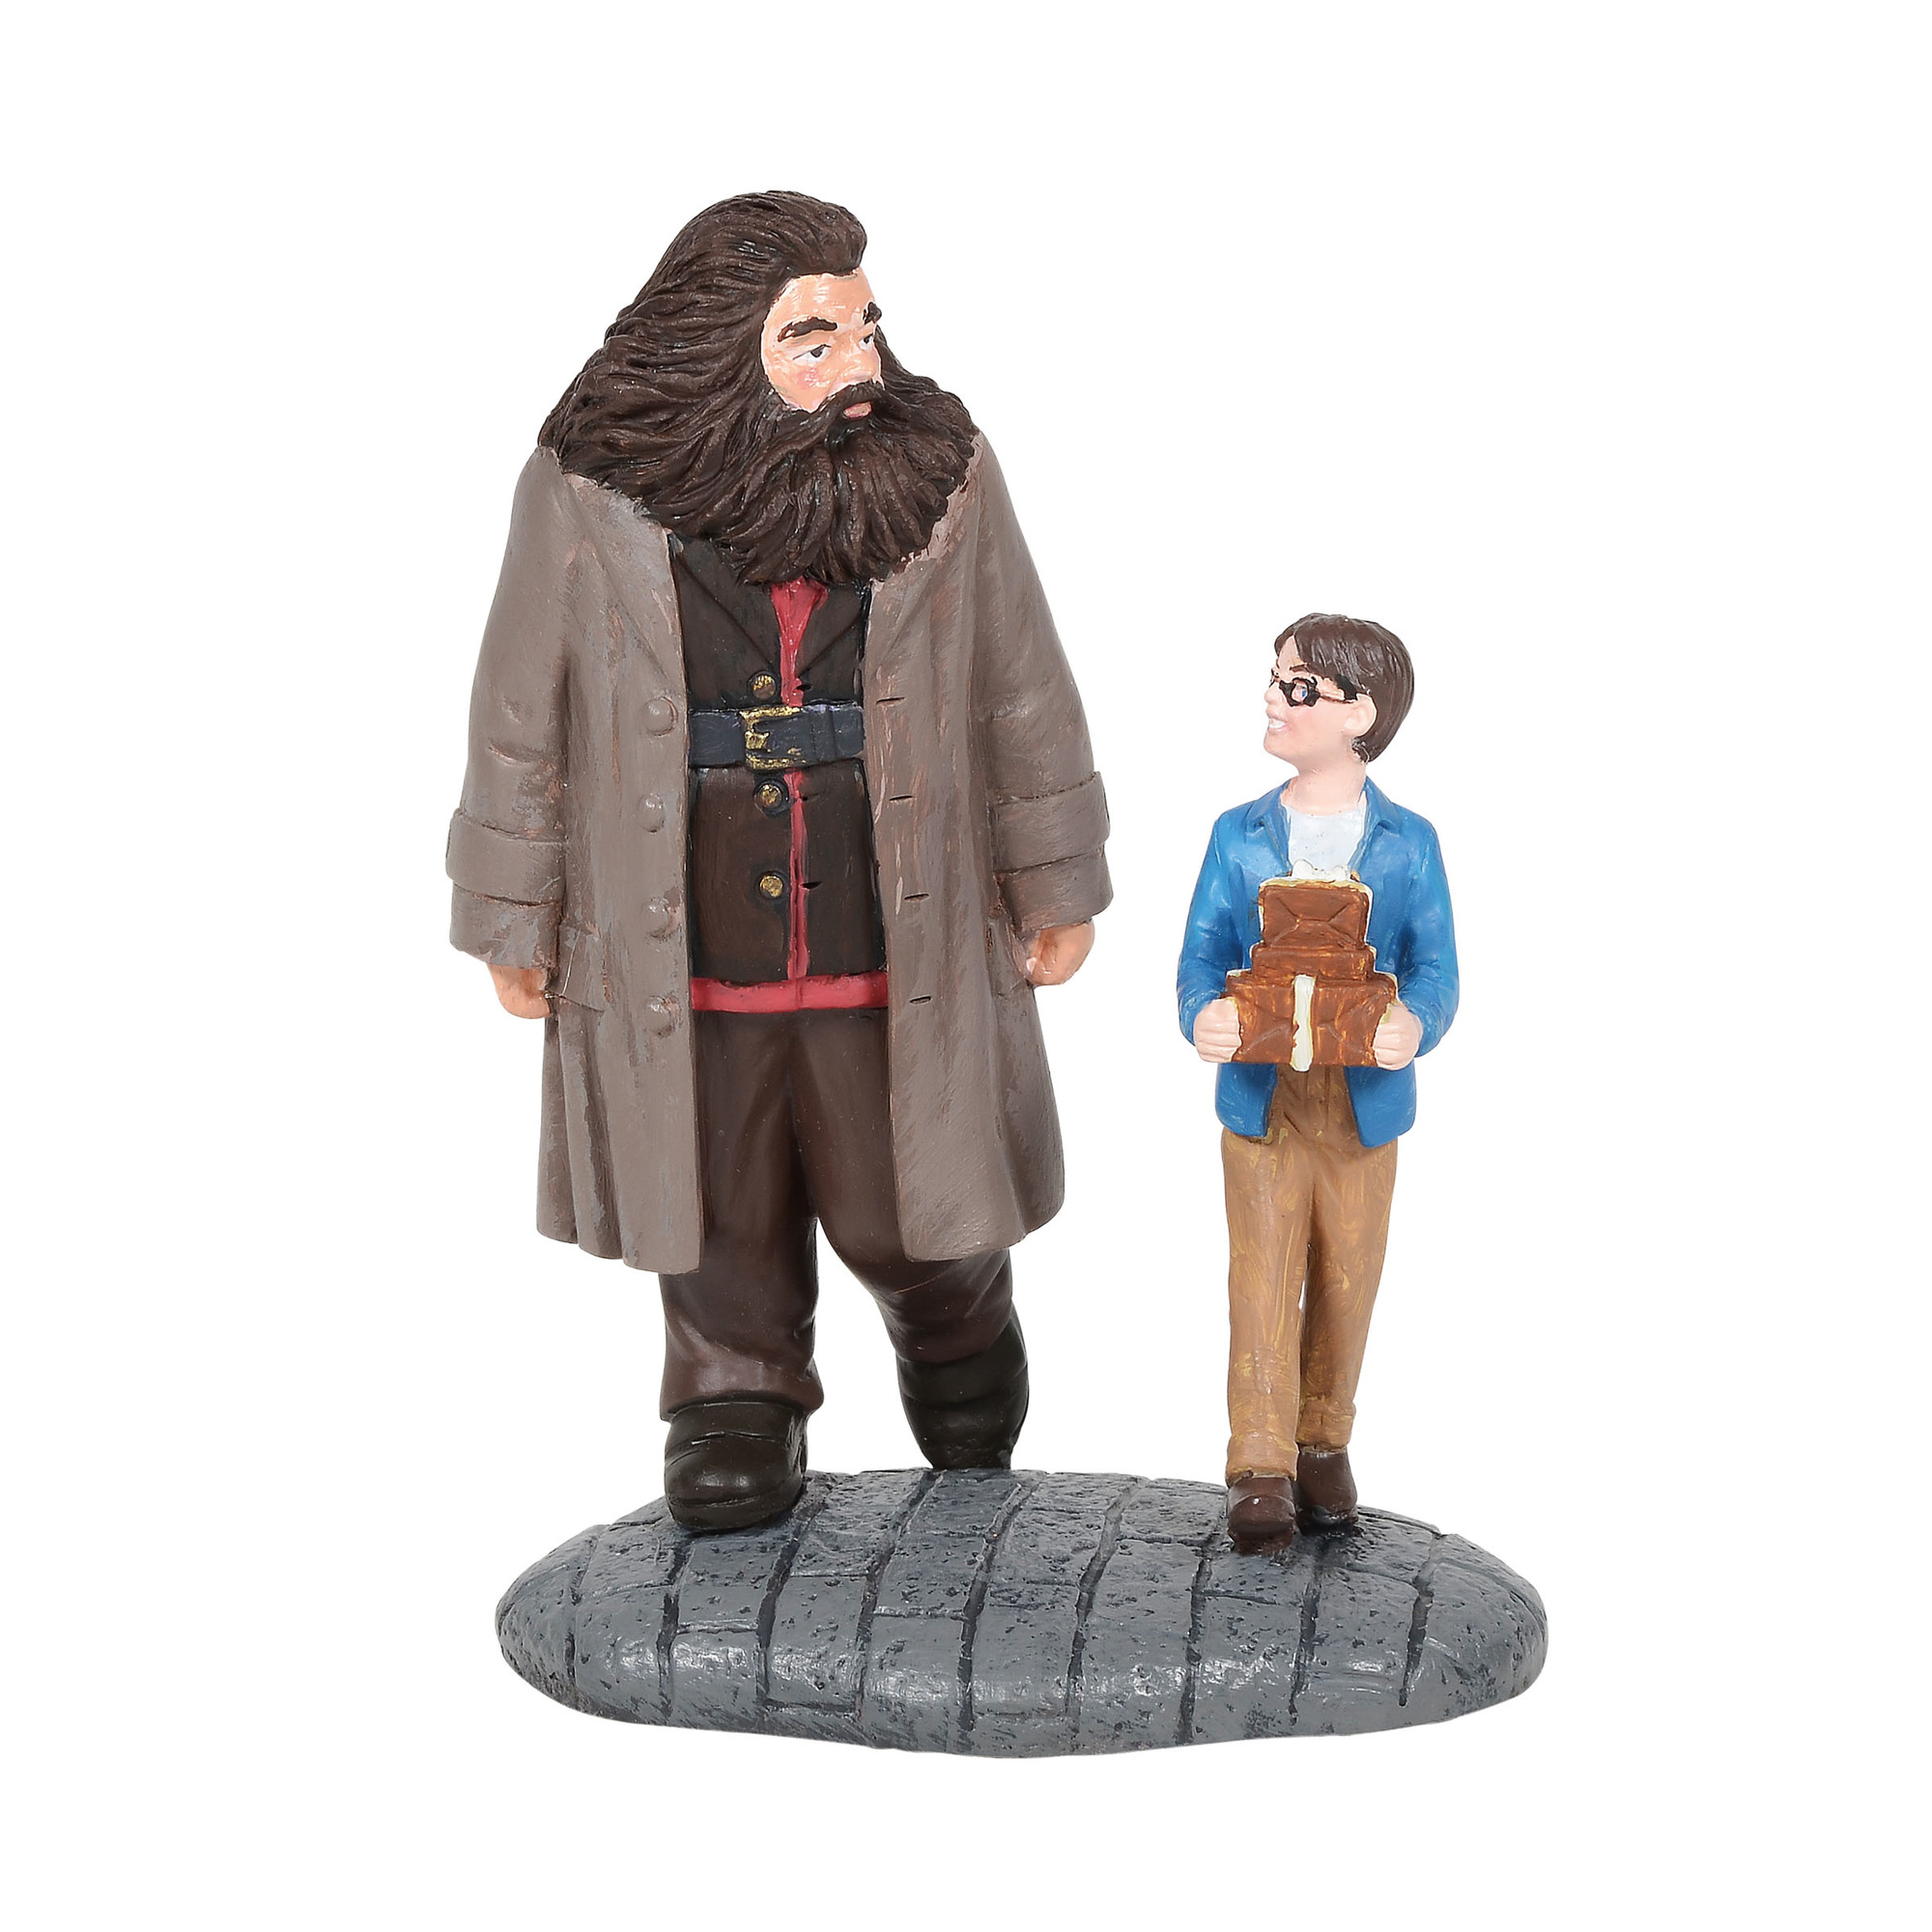 Universal Figure - Harry Potter Village - Harry and Hagrid Shopping